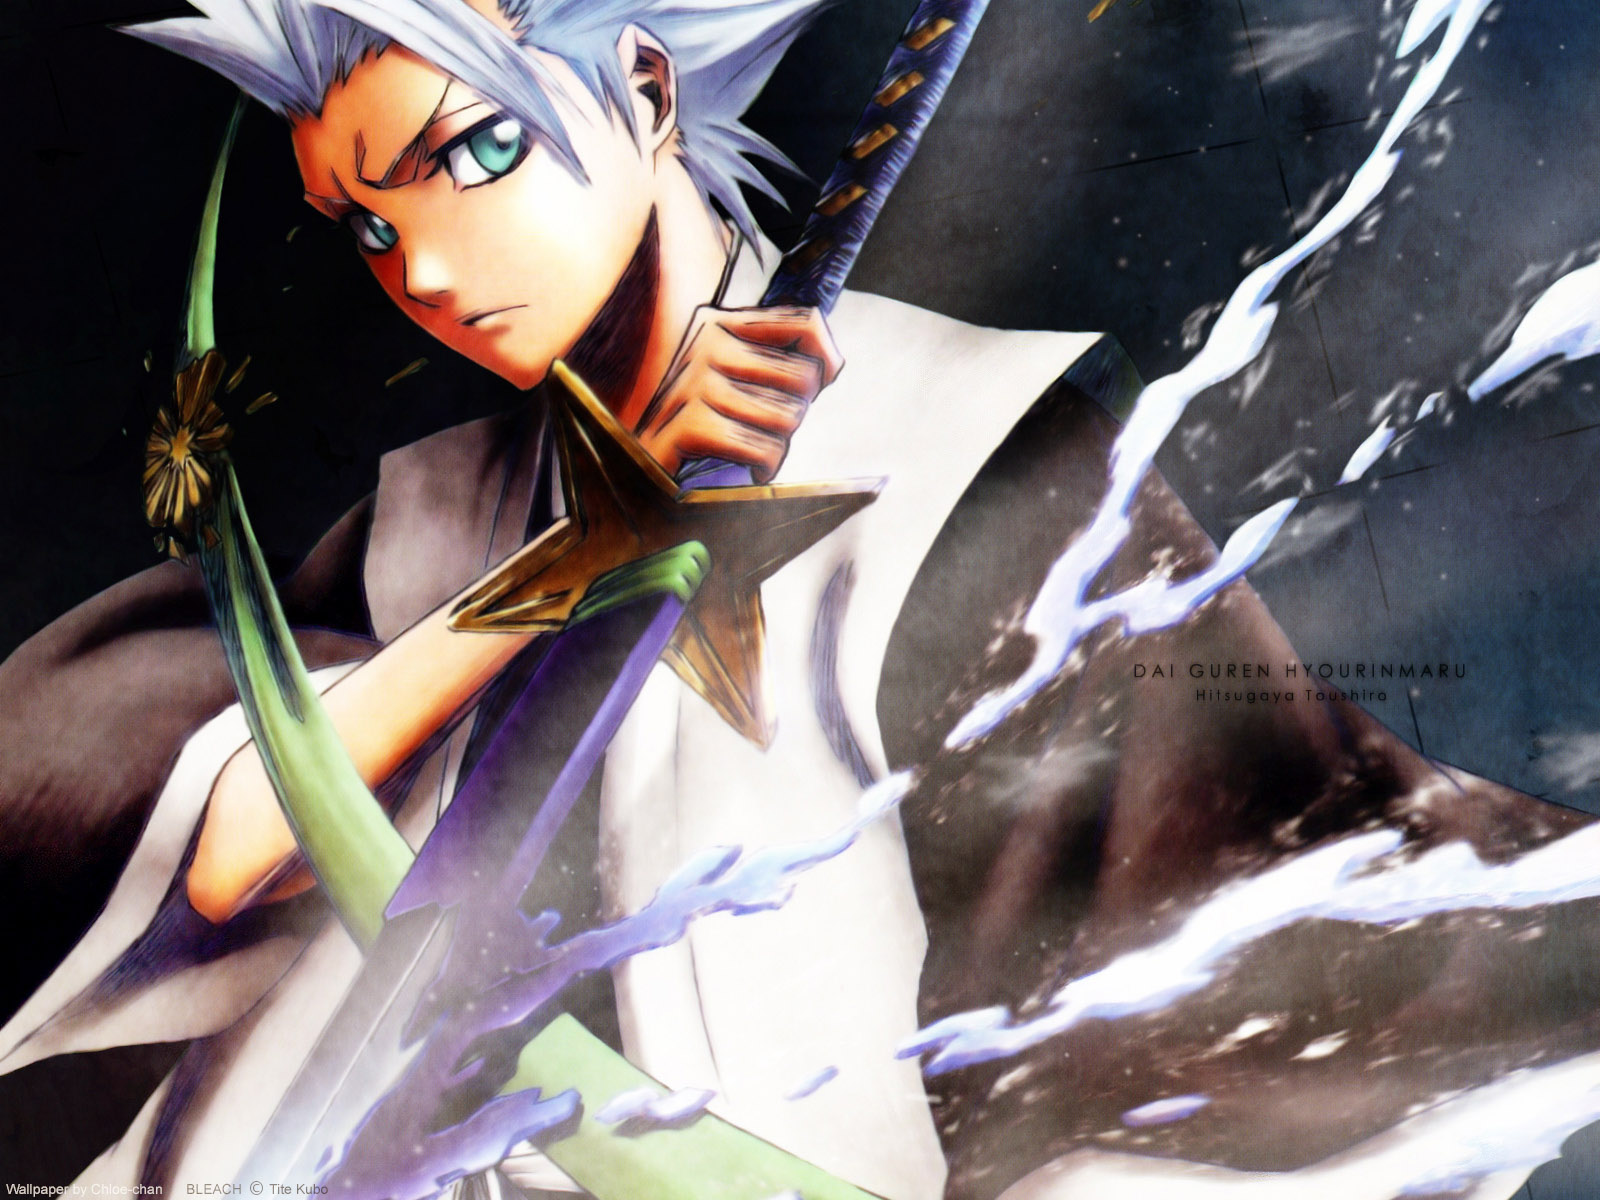 anime manga 4 all bleach anime wallpapers